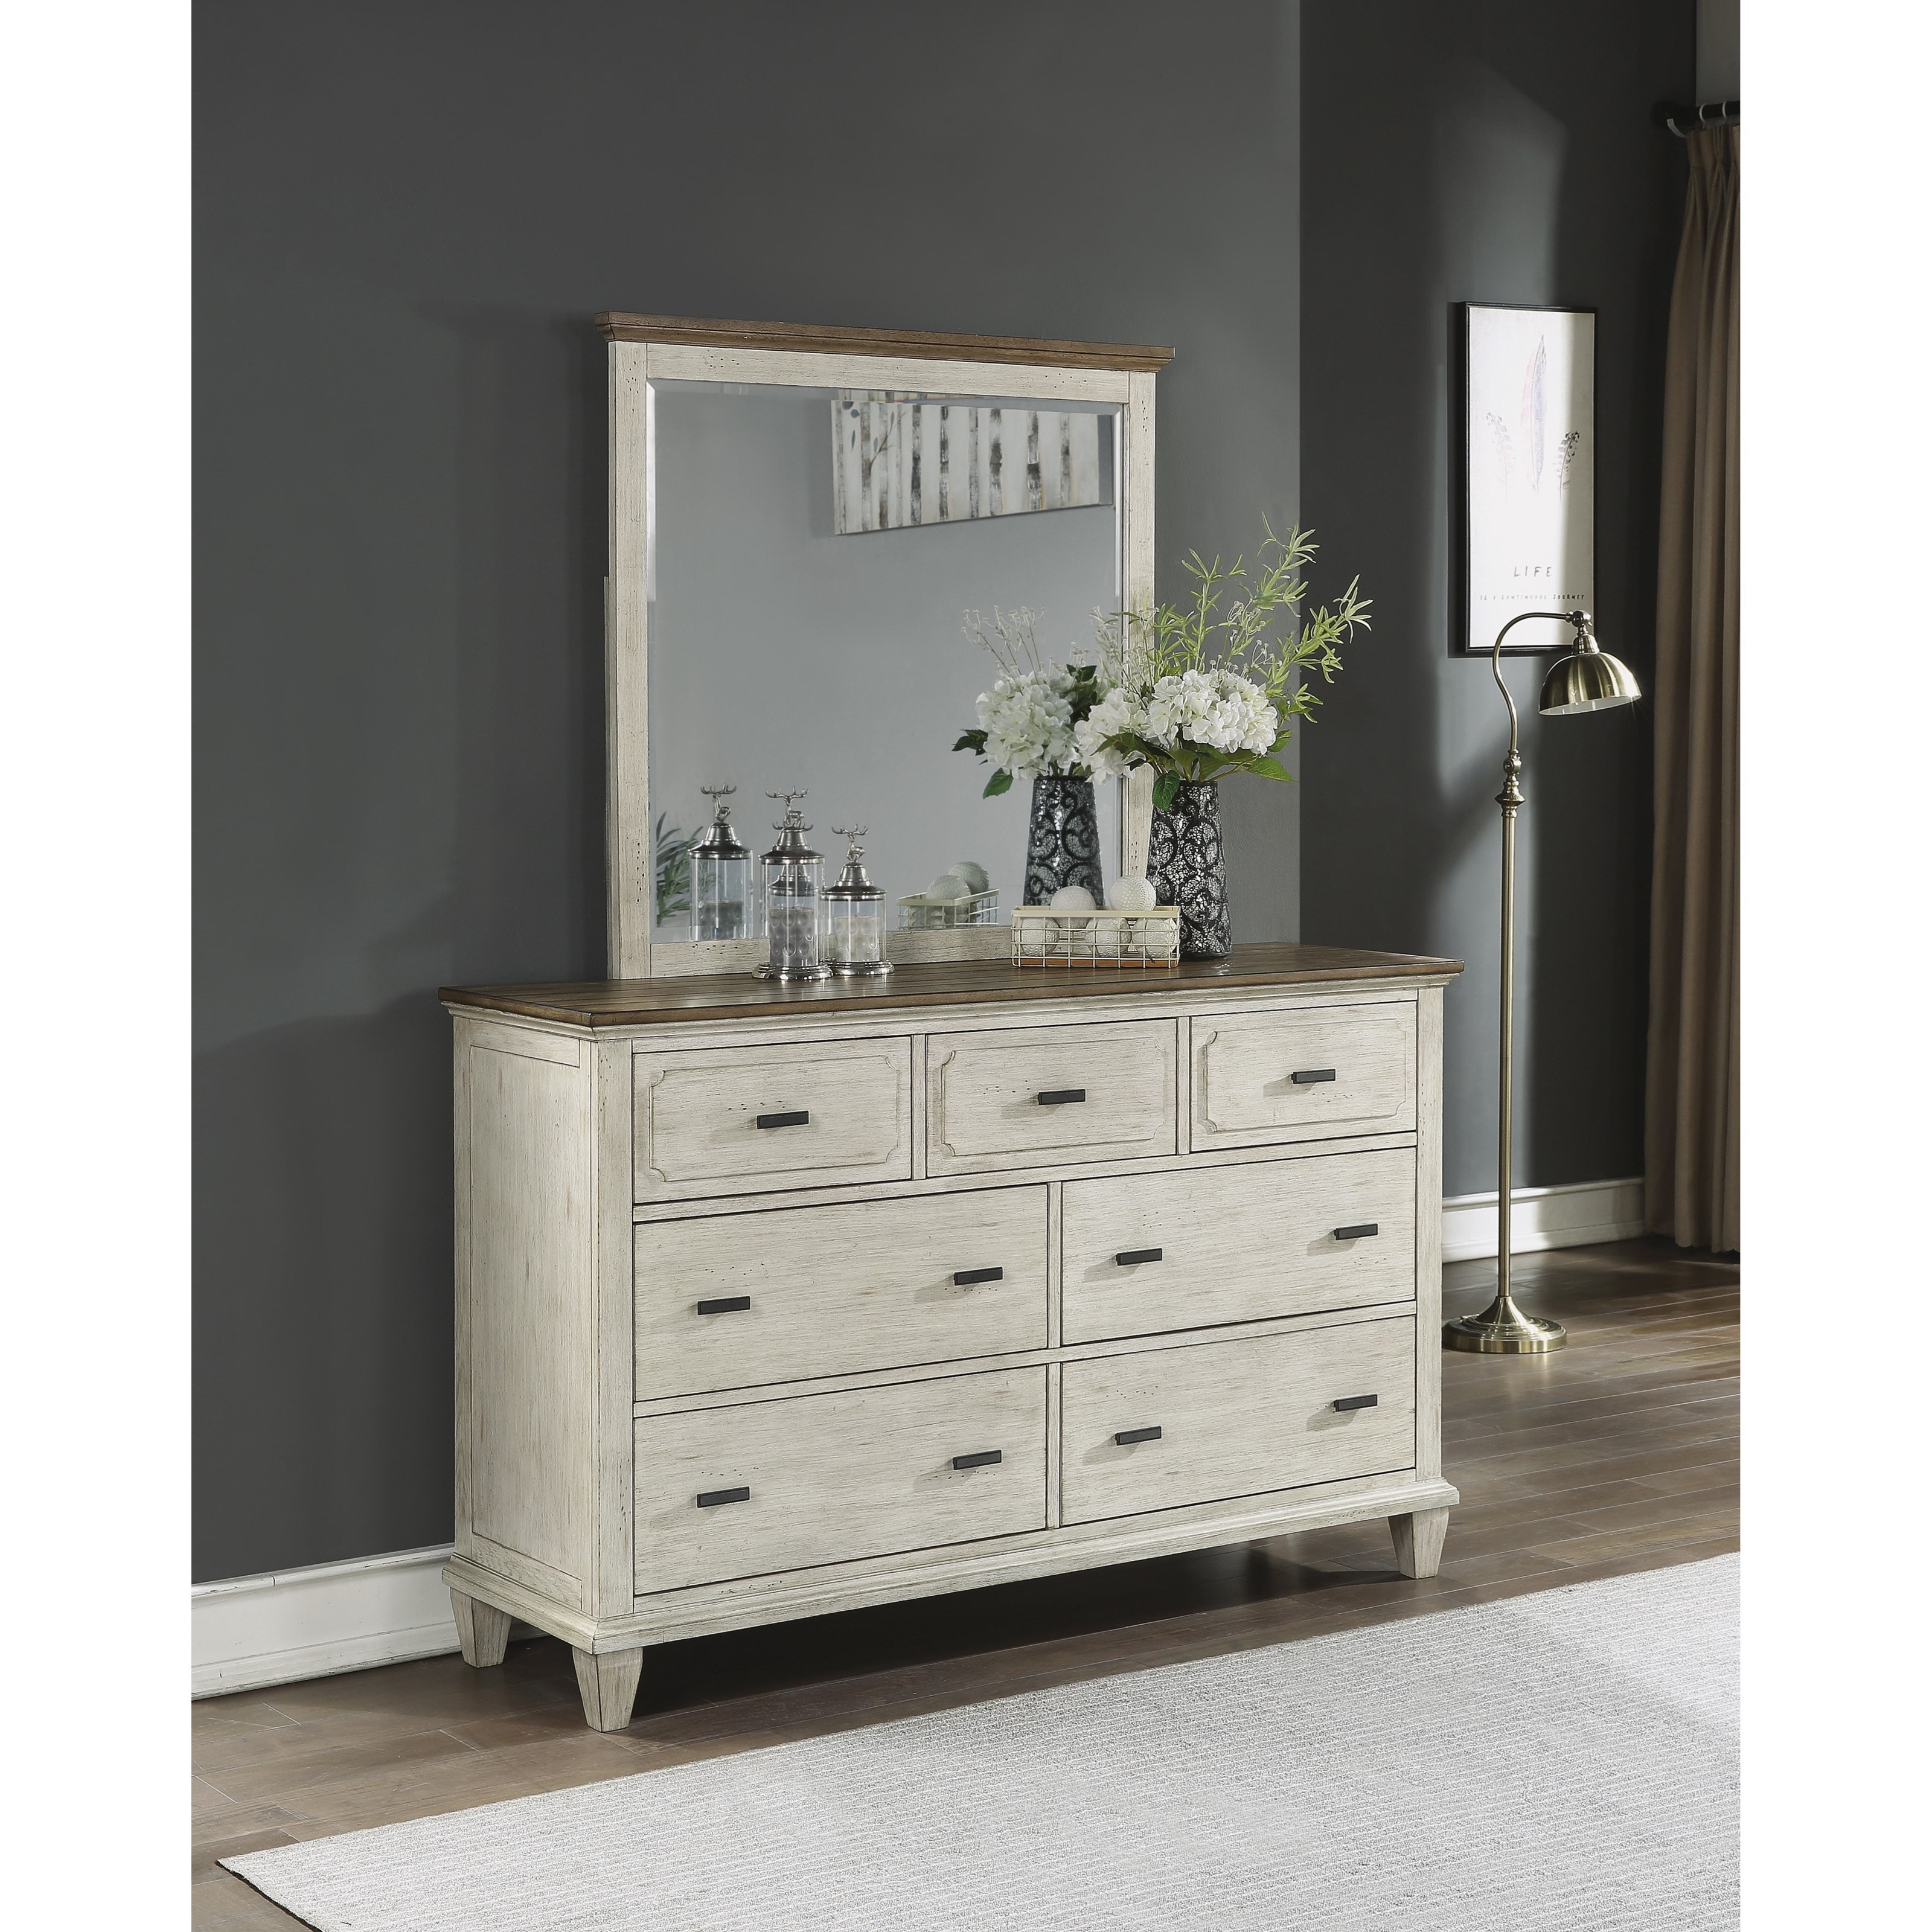 Relaxed Vintage Dresser and Mirror Set with Felt-Lined Drawers